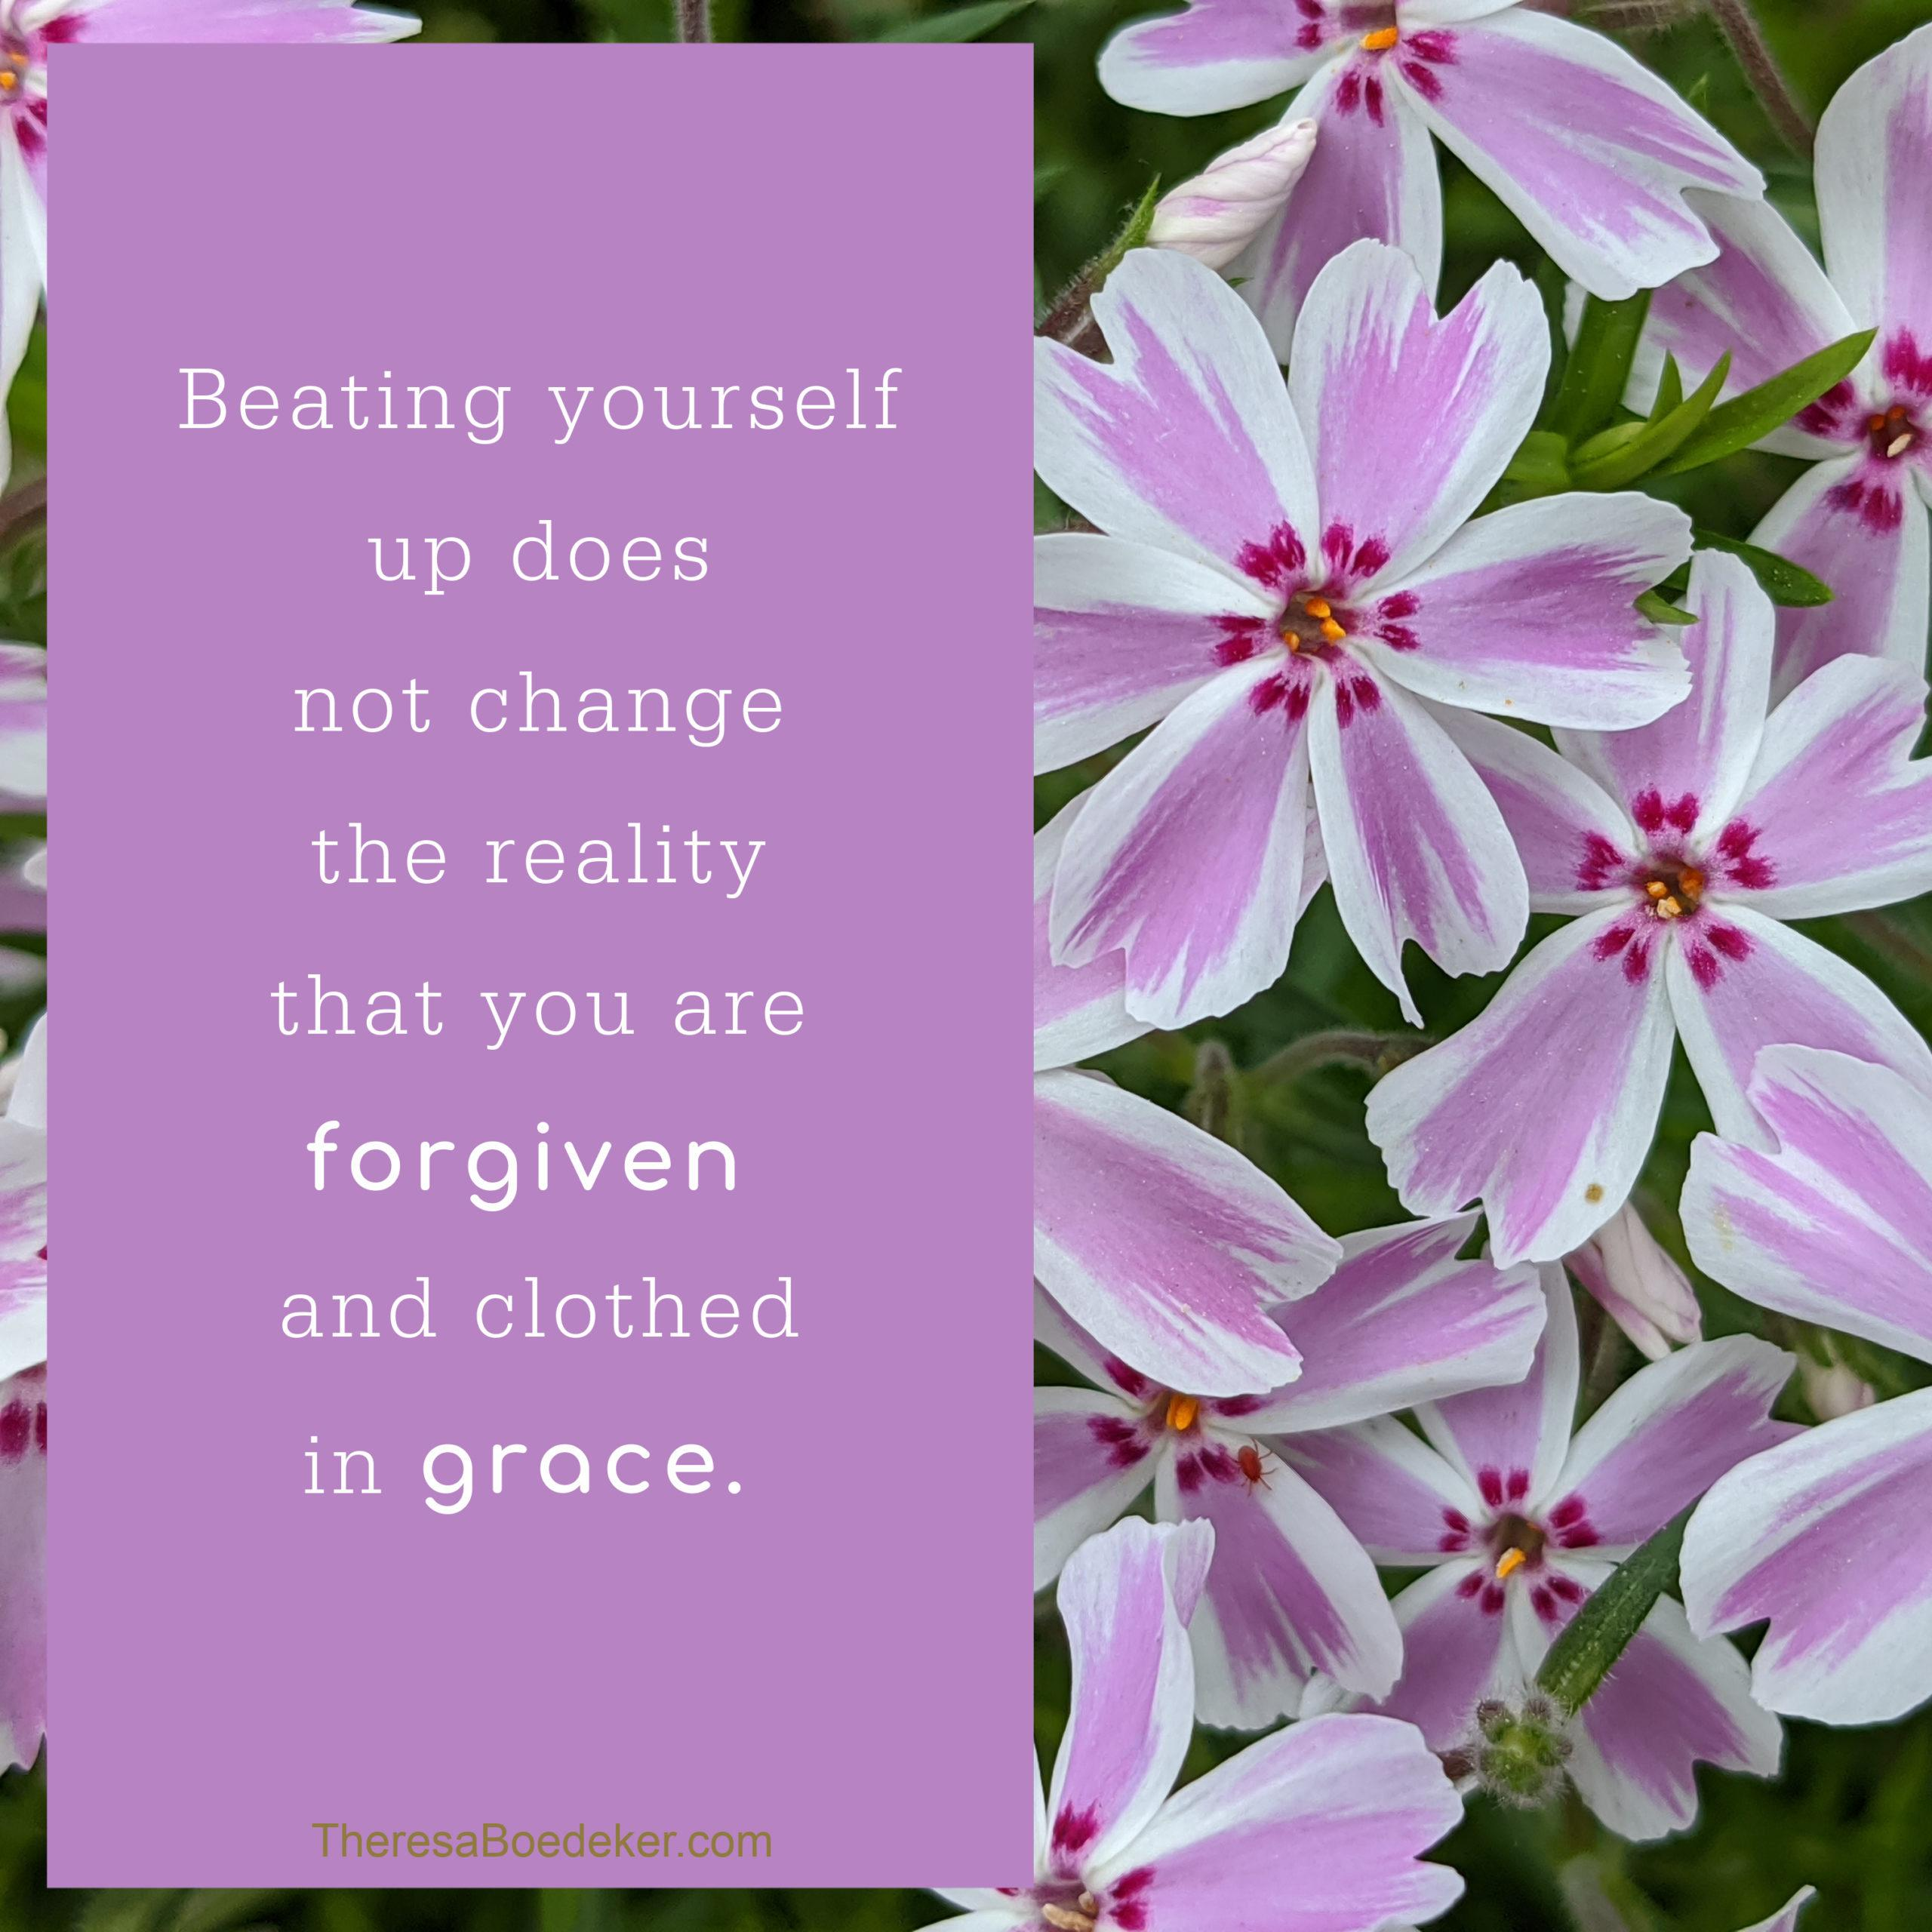 Give yourself grace, especially for the small things you get wrong or forget to do.